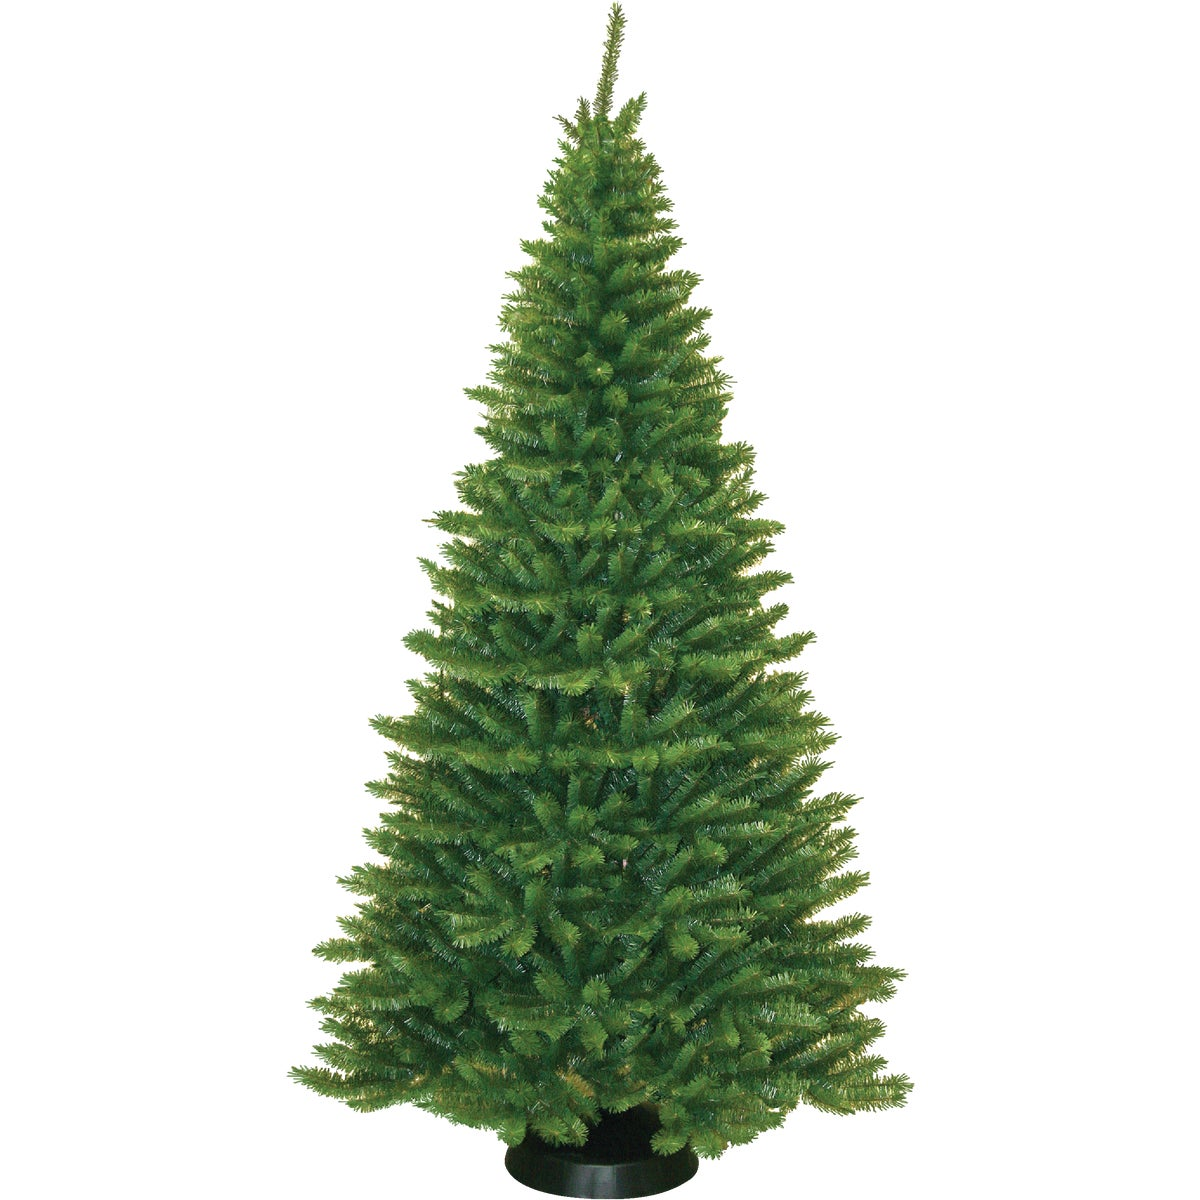 7.5' SLIM MOSS FIR TREE - DB-GMH75R126 by General Foam Dom Chr